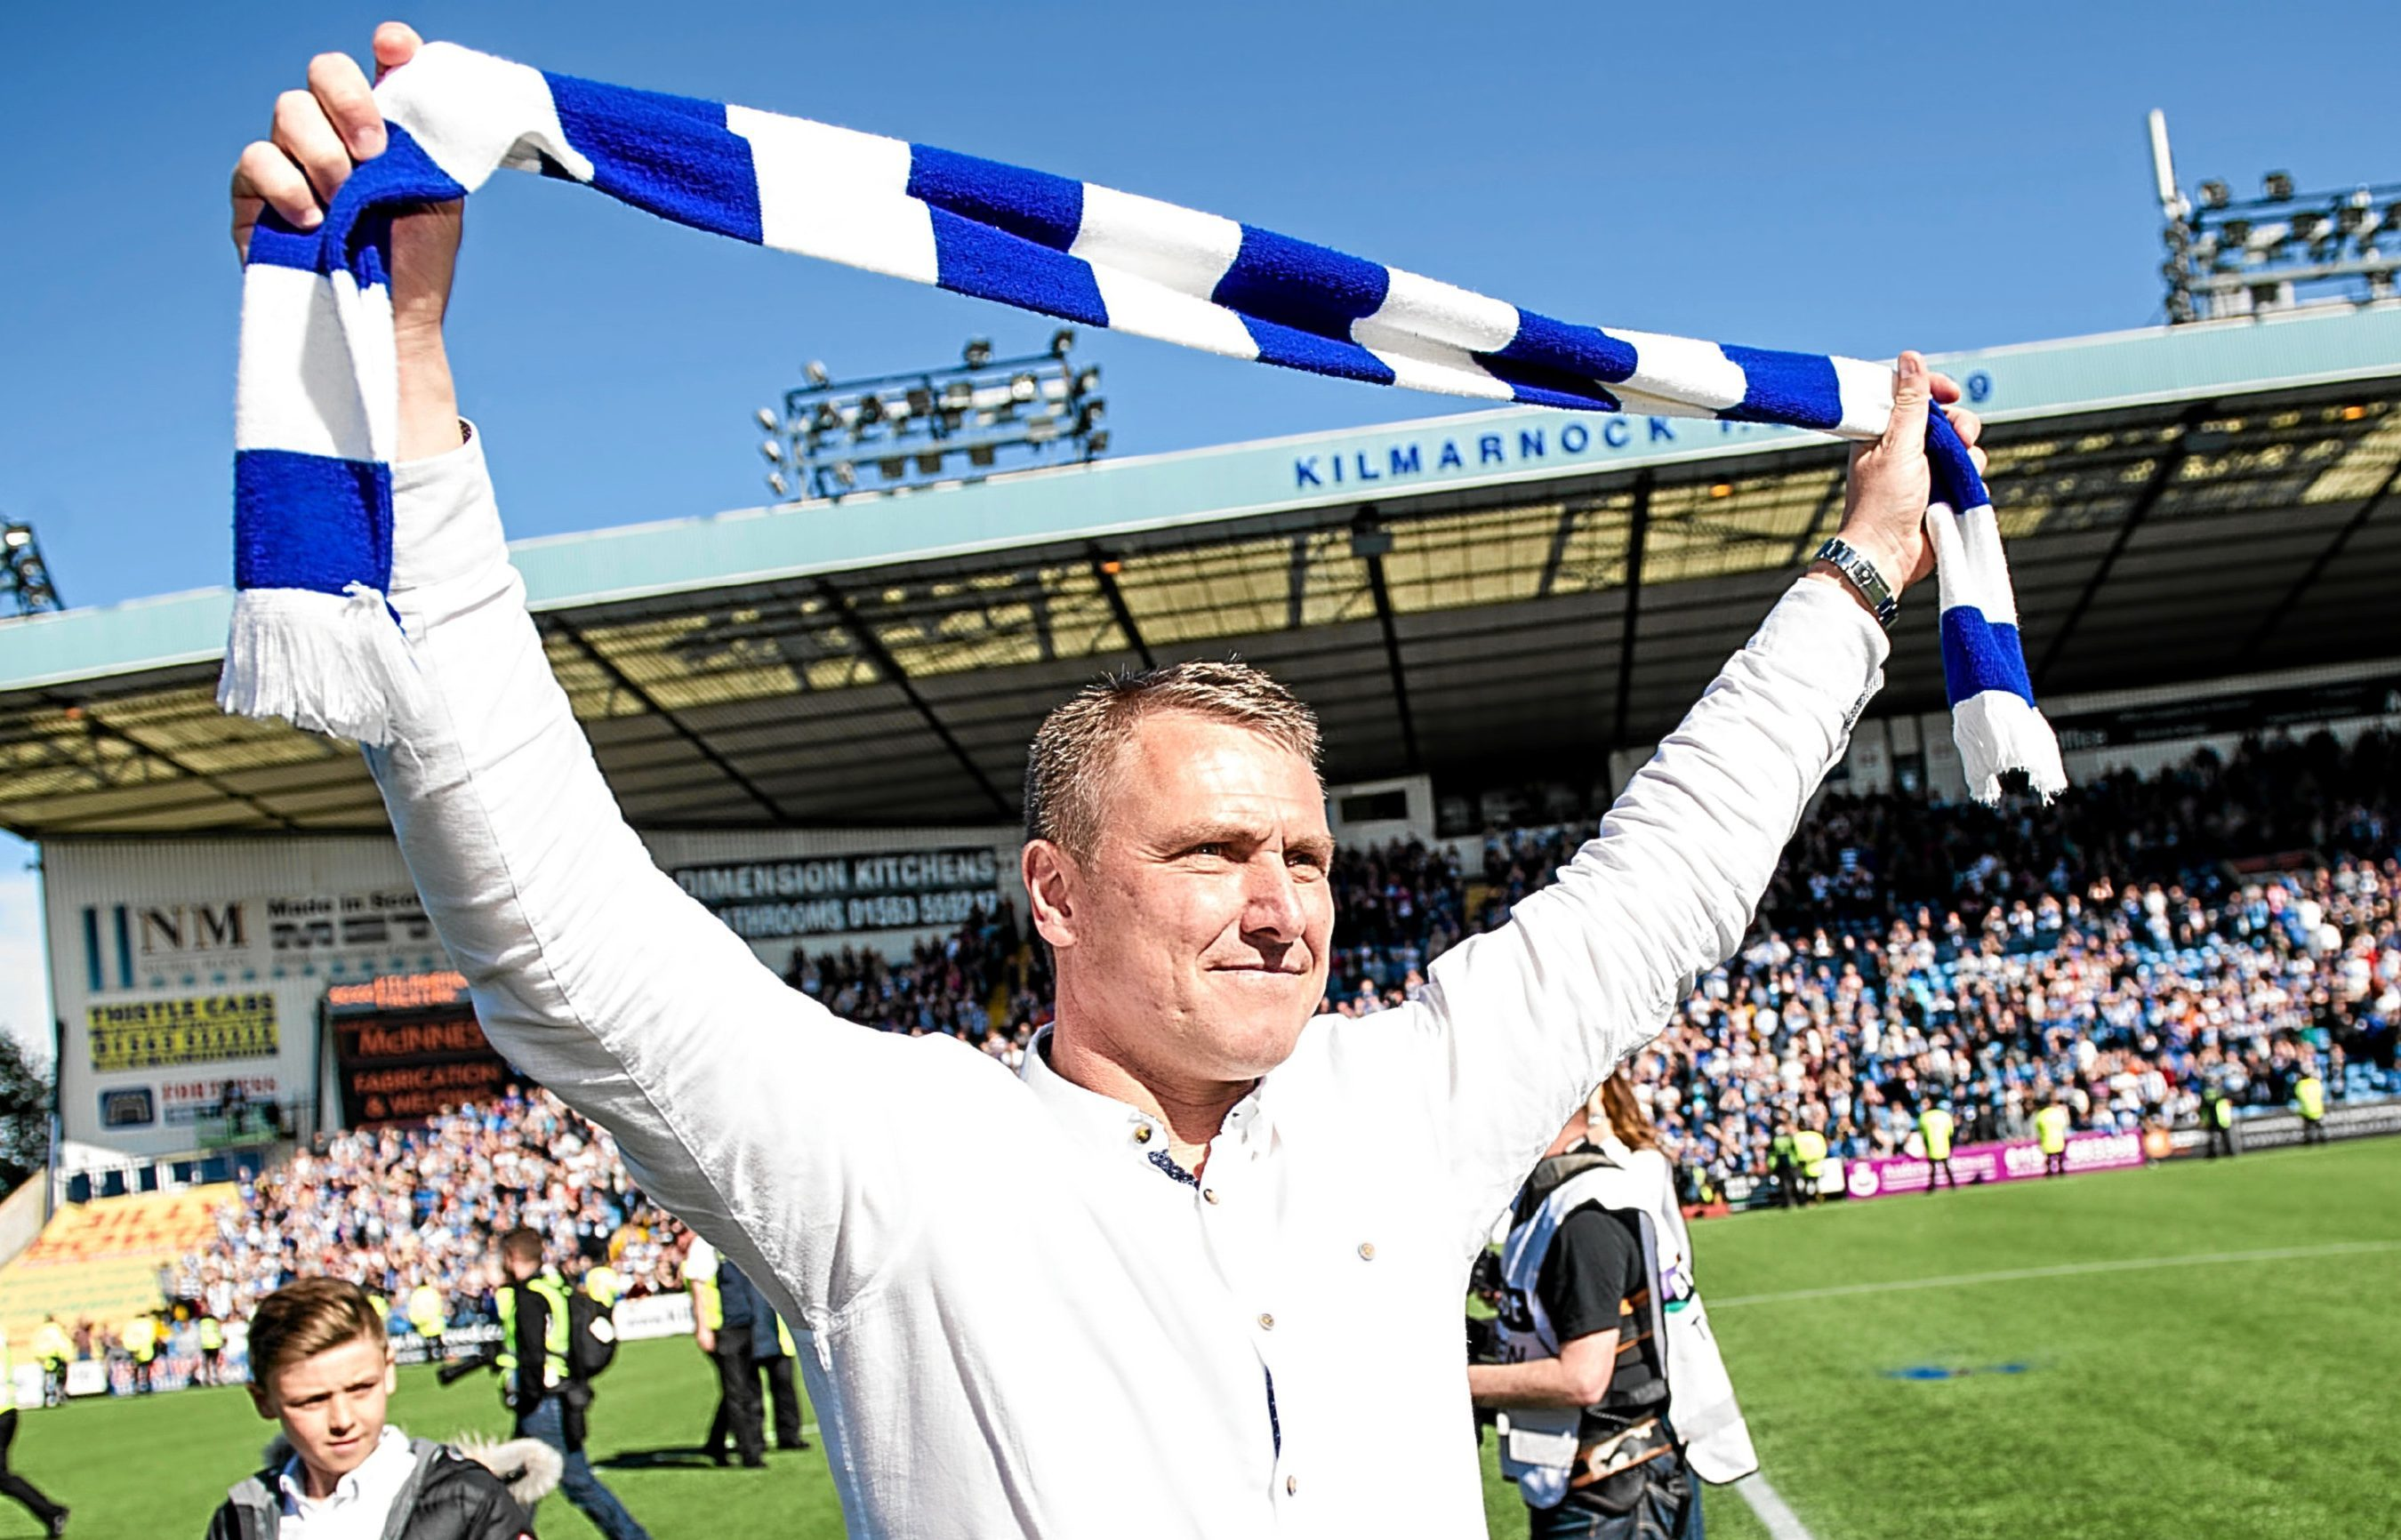 Kilmarnock manager Lee Clark celebrates at full time.